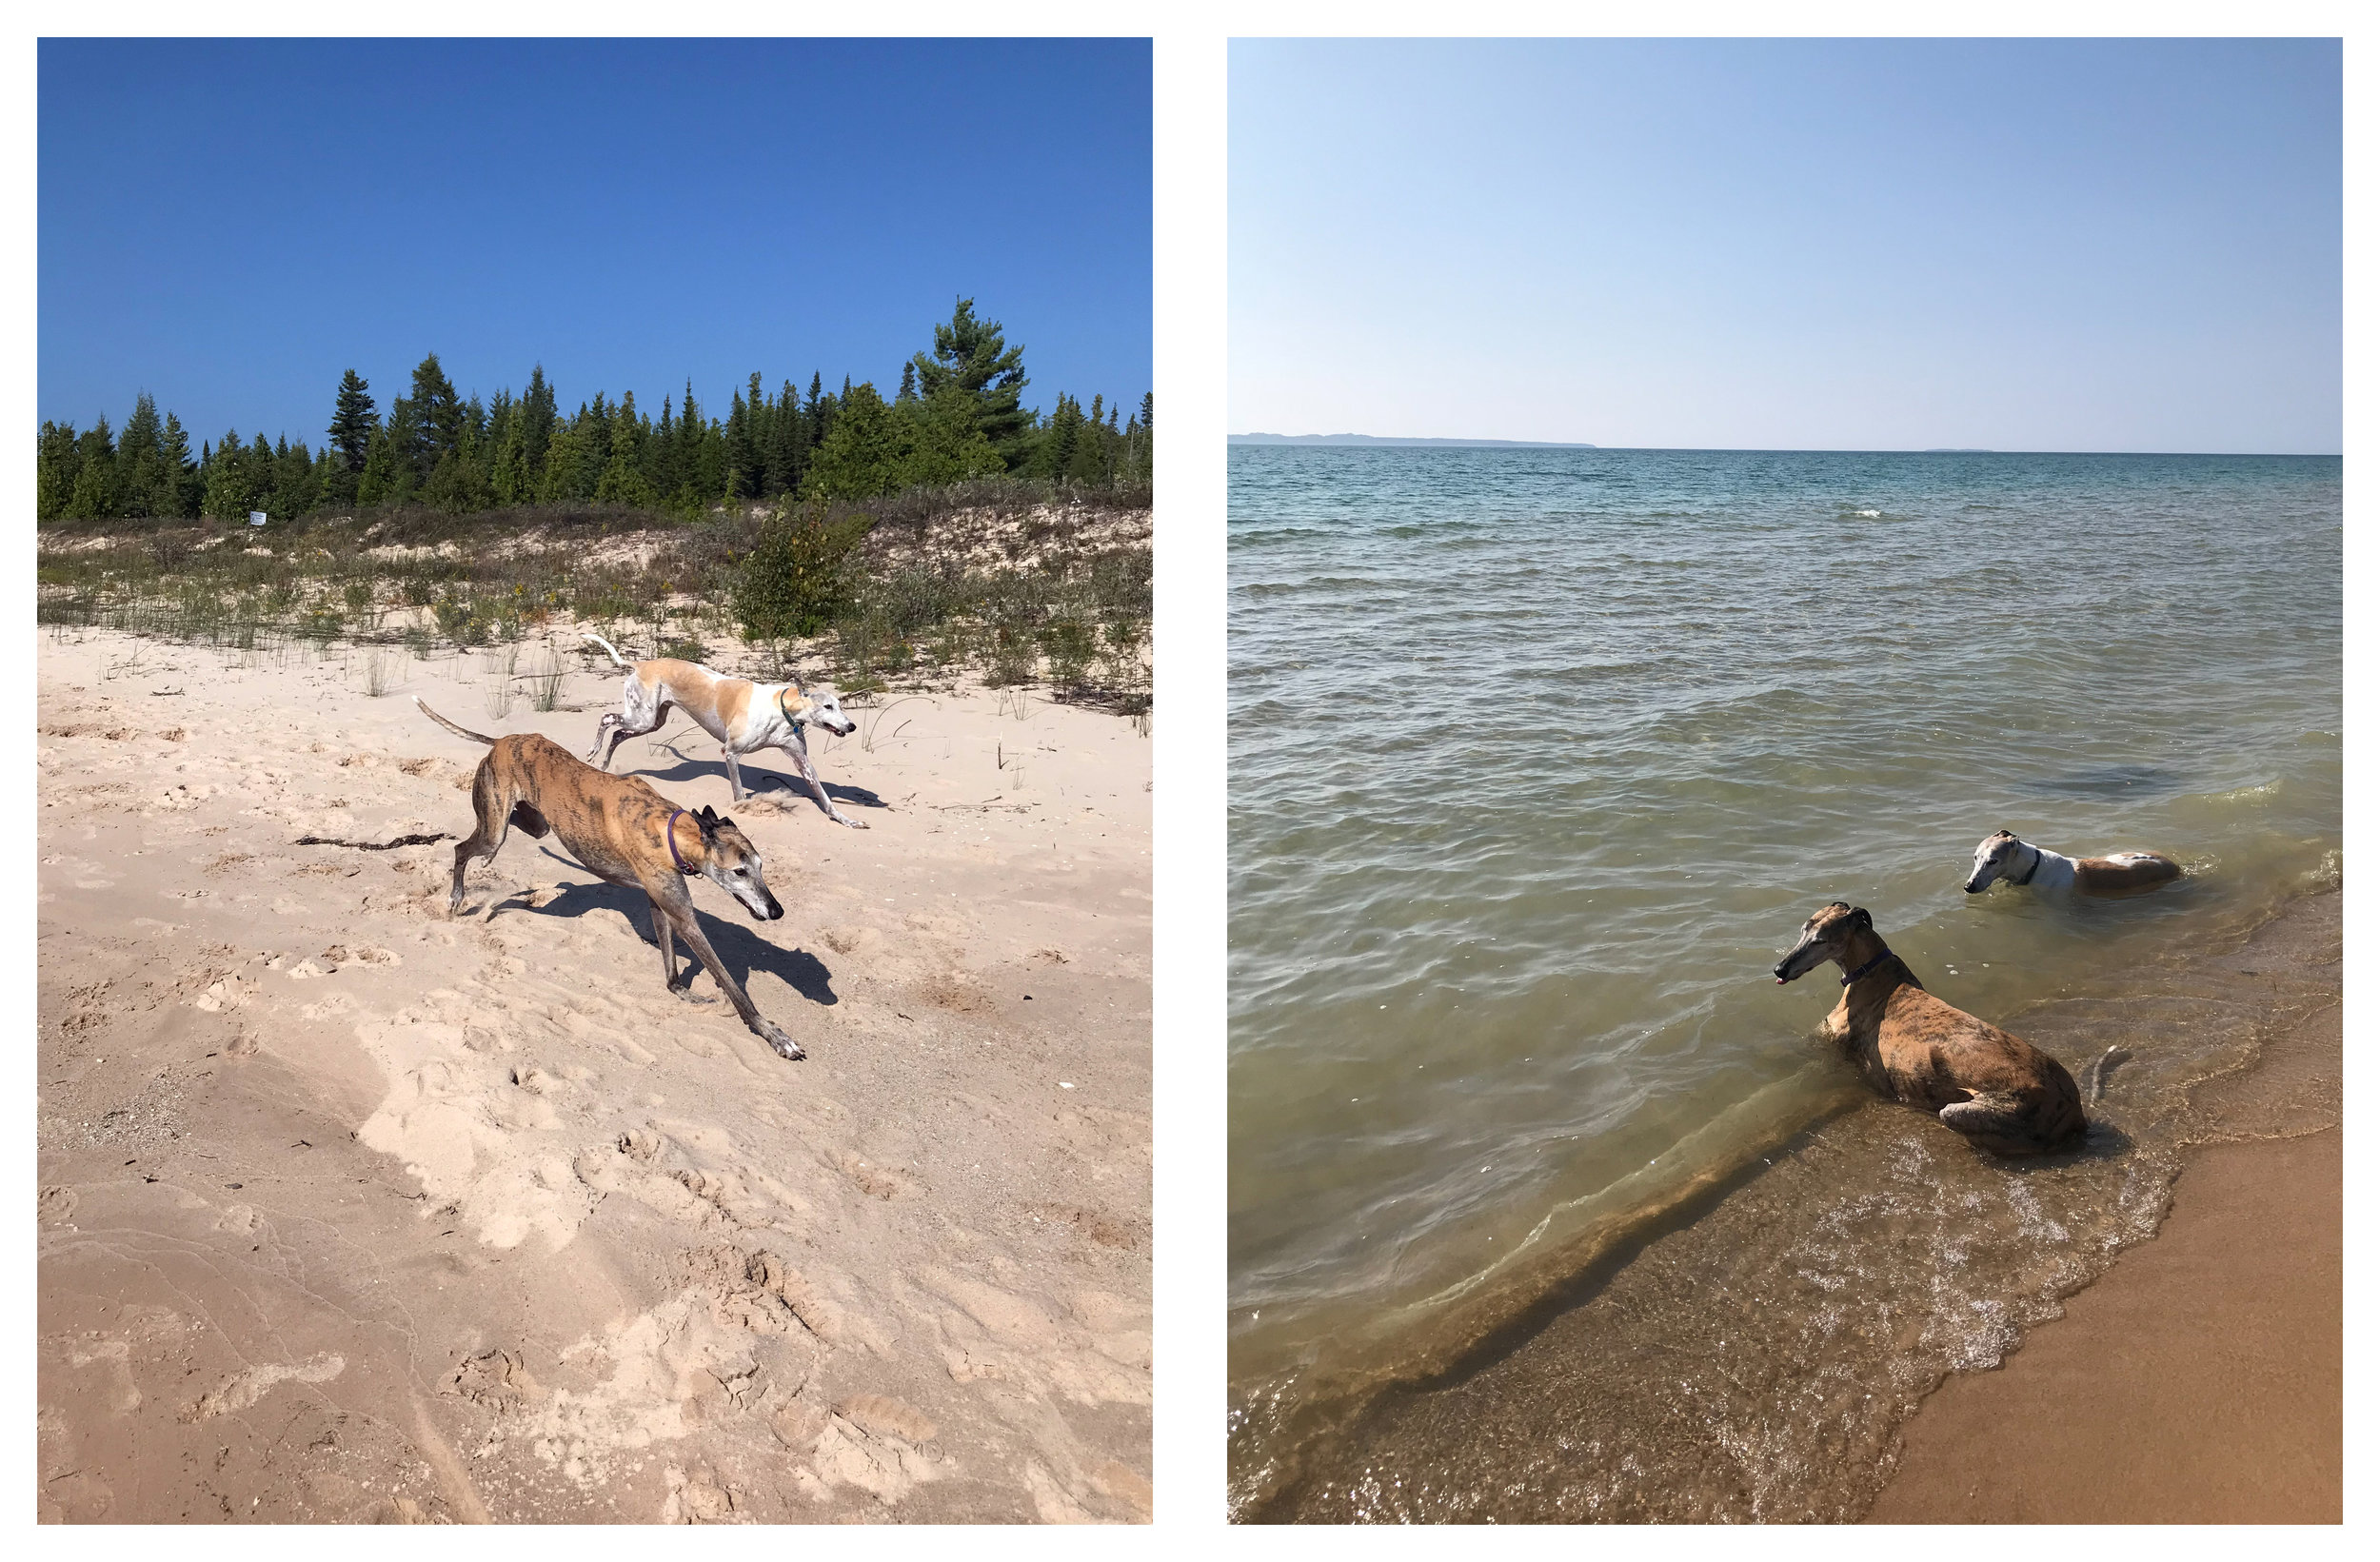 My Two Retired Racing Greyhounds Love Running on the Beach and Lounging in the Water